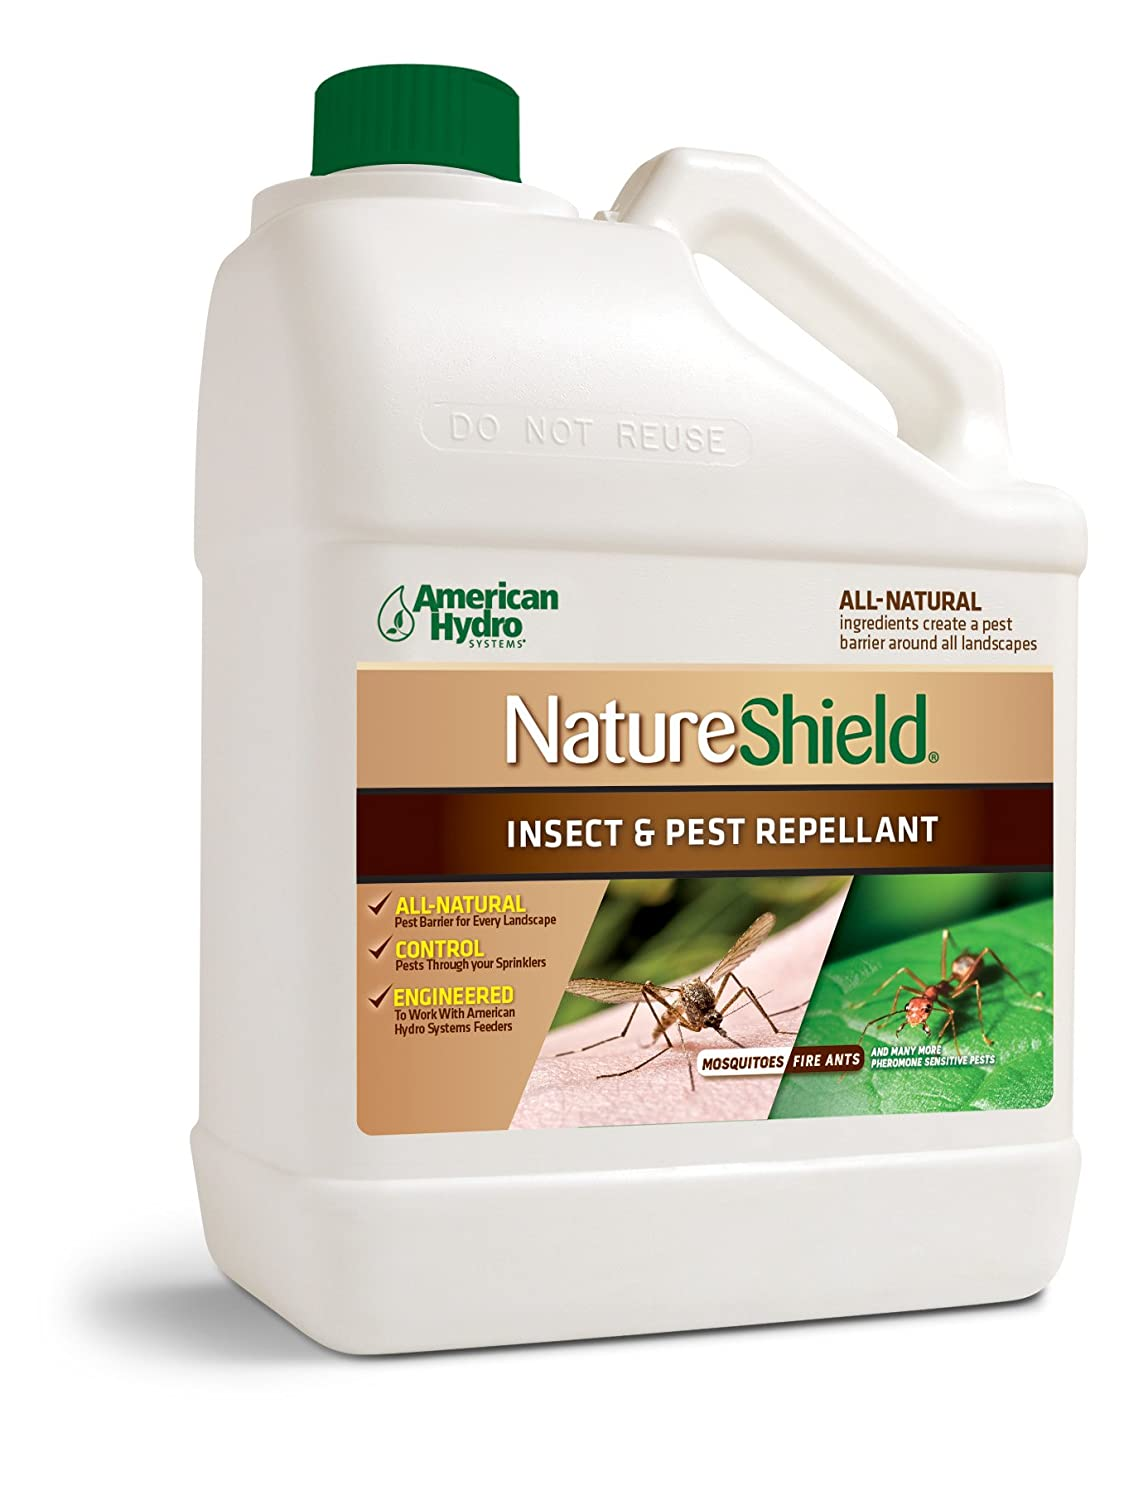 American Hydro Systems NS1-1C Nature Shield Insect and Pest Repellant, All Natural, 1-Gallon, 4 Pack